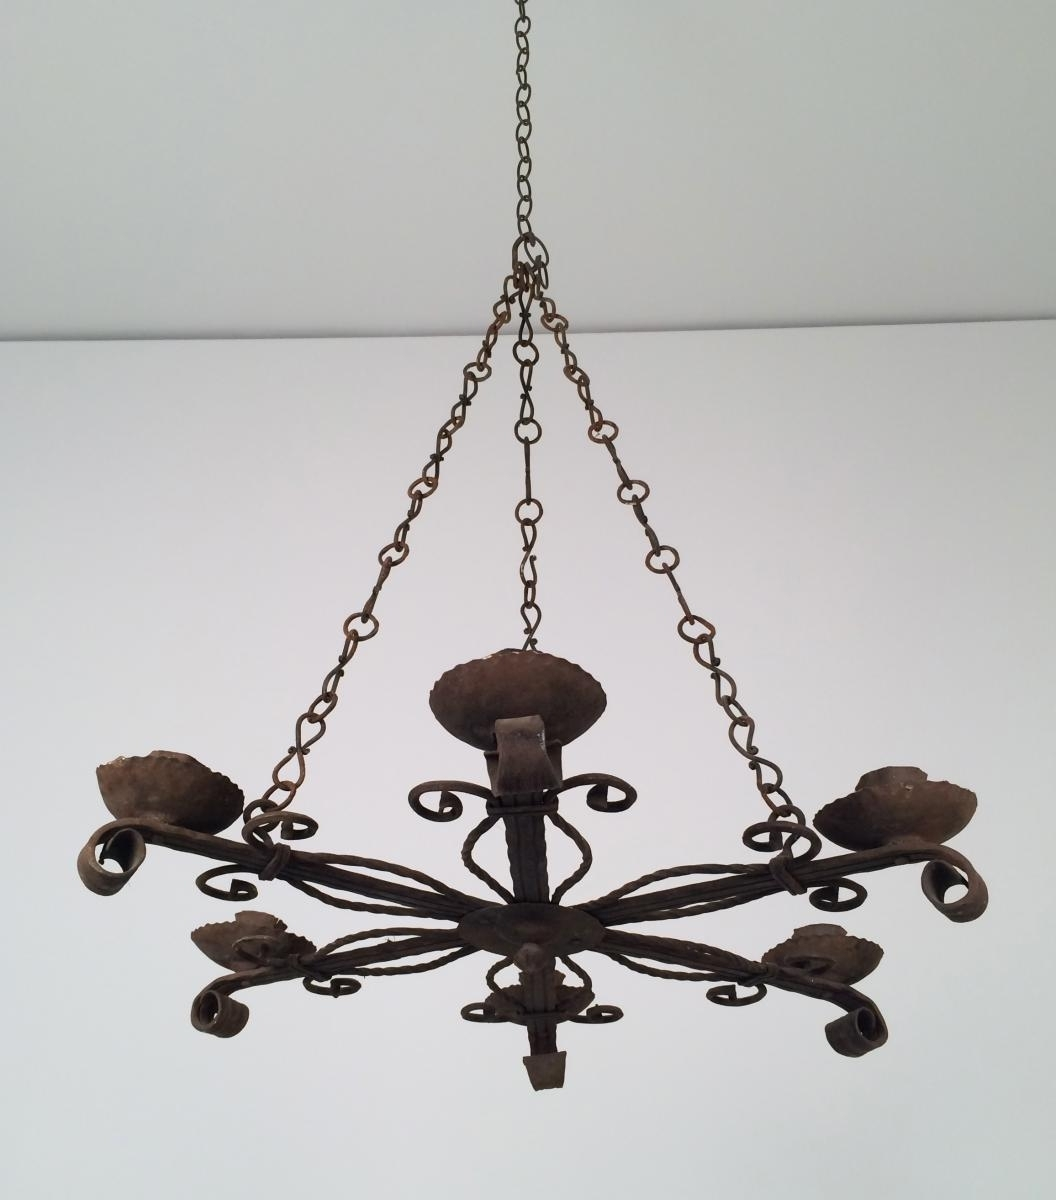 Wrought Iron Chandeliers With Most Up To Date Wrought Iron Chandelier With 5 Candle Holders, 1920S For Sale At Pamono (View 17 of 20)